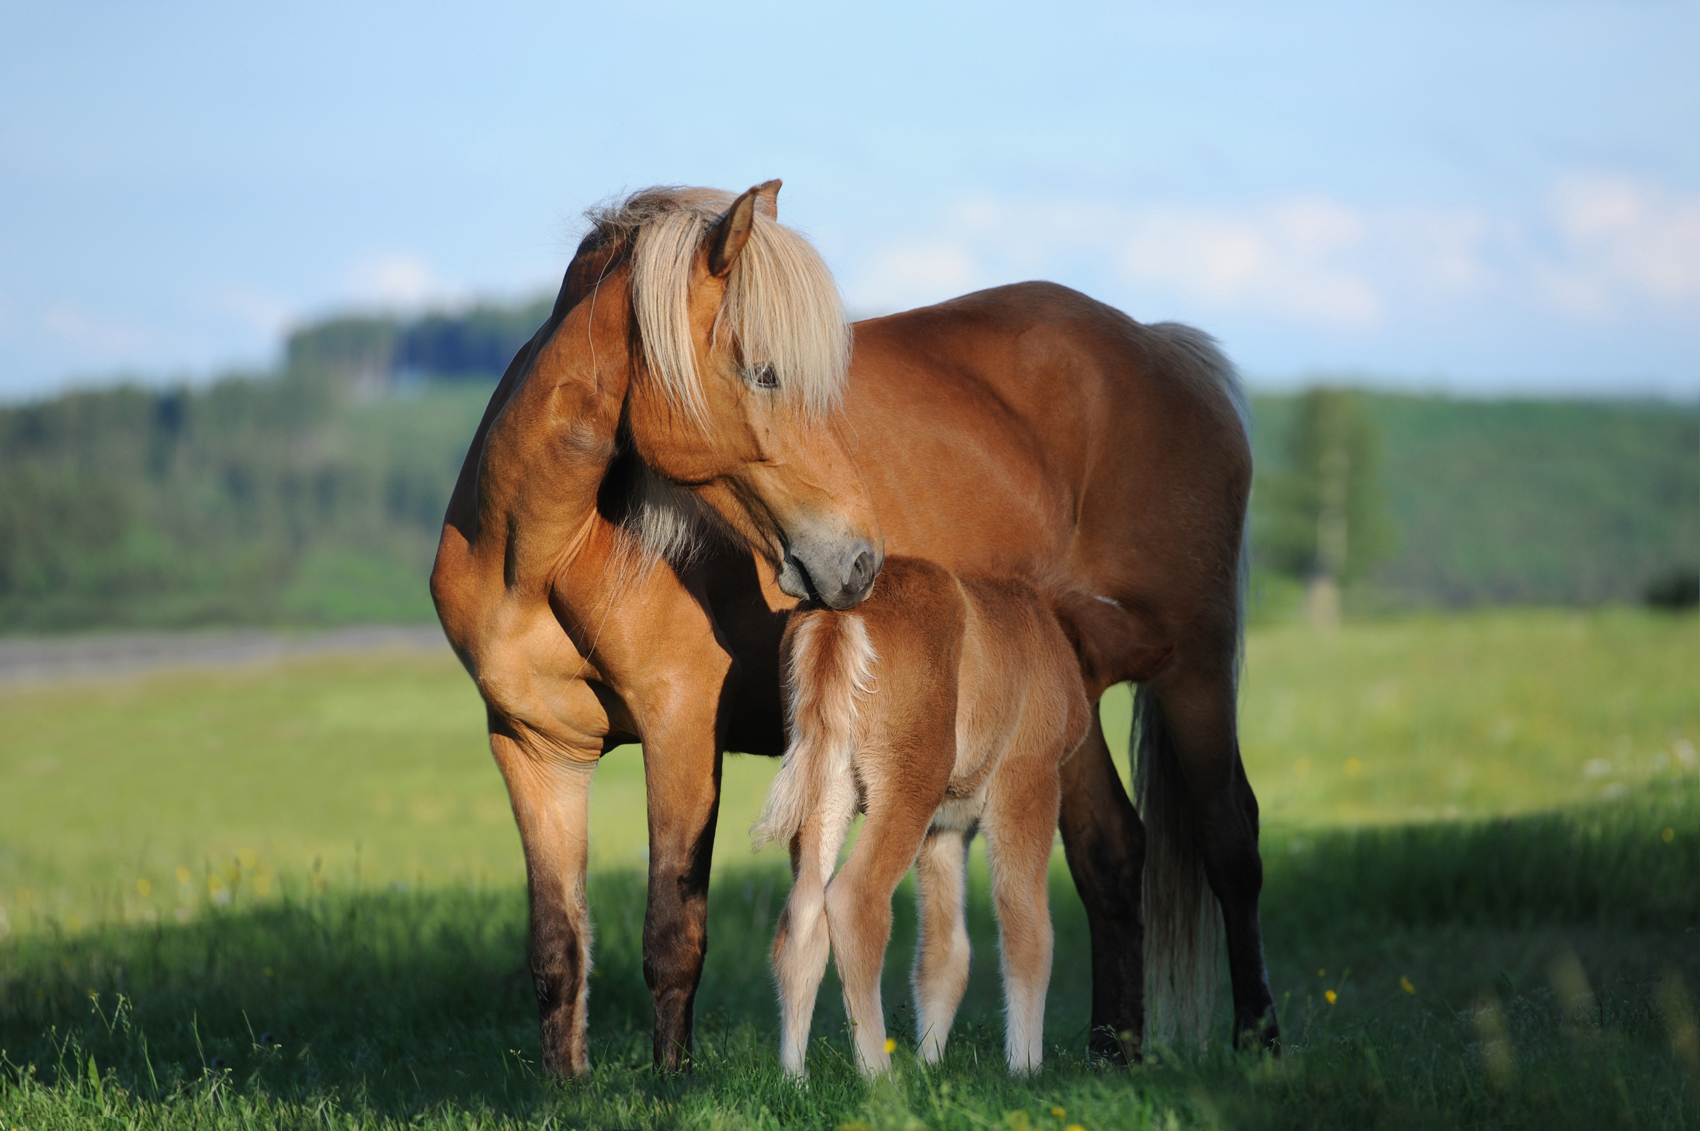 A mare and her foal standing in a field grazing on a sunny day